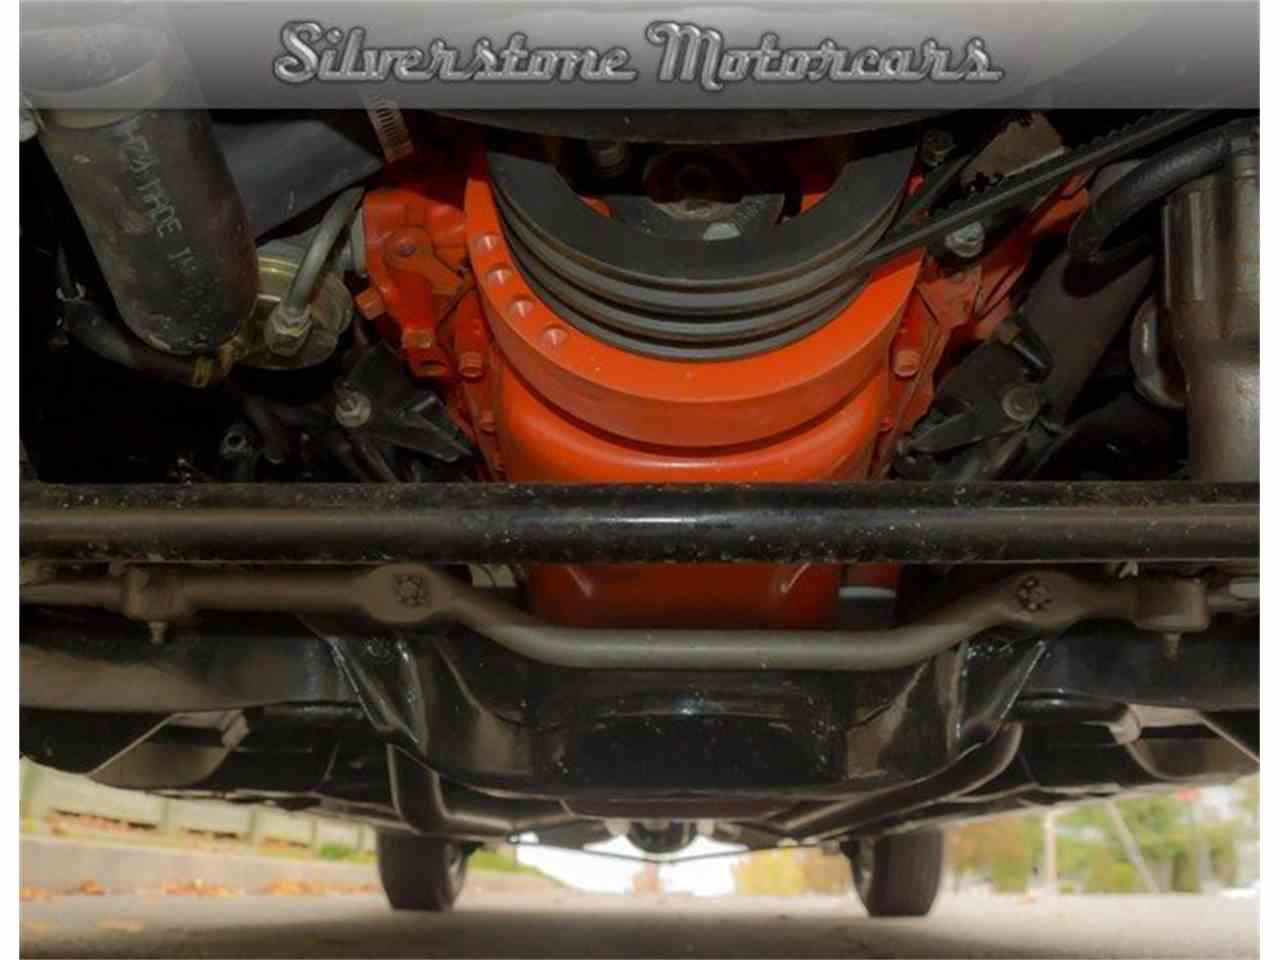 Large Picture of 1966 Chevrolet Chevelle SS located in Massachusetts - $47,500.00 Offered by Silverstone Motorcars - LRTM